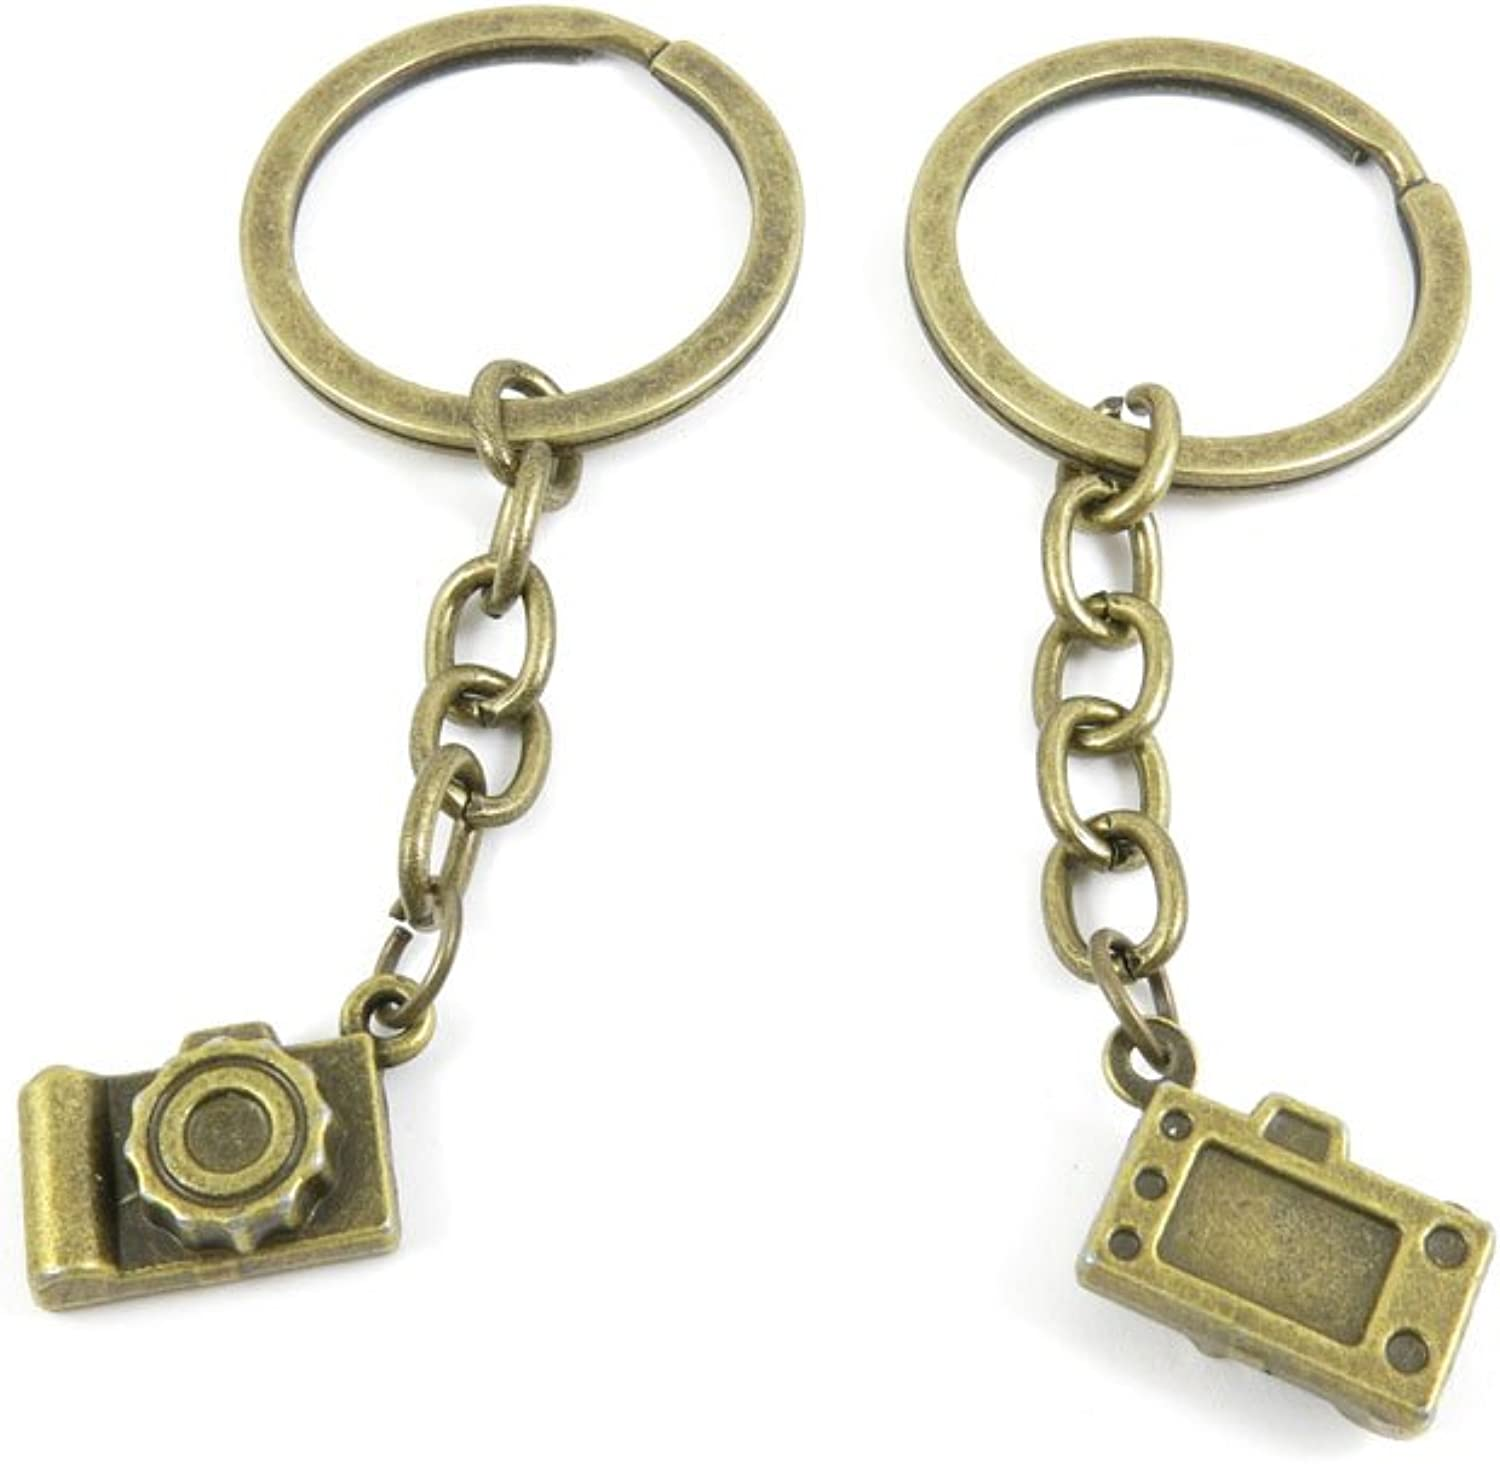 100 PCS Keyrings Keychains Key Ring Chains Tags Jewelry Findings Clasps Buckles Supplies Y3FP6 Camera